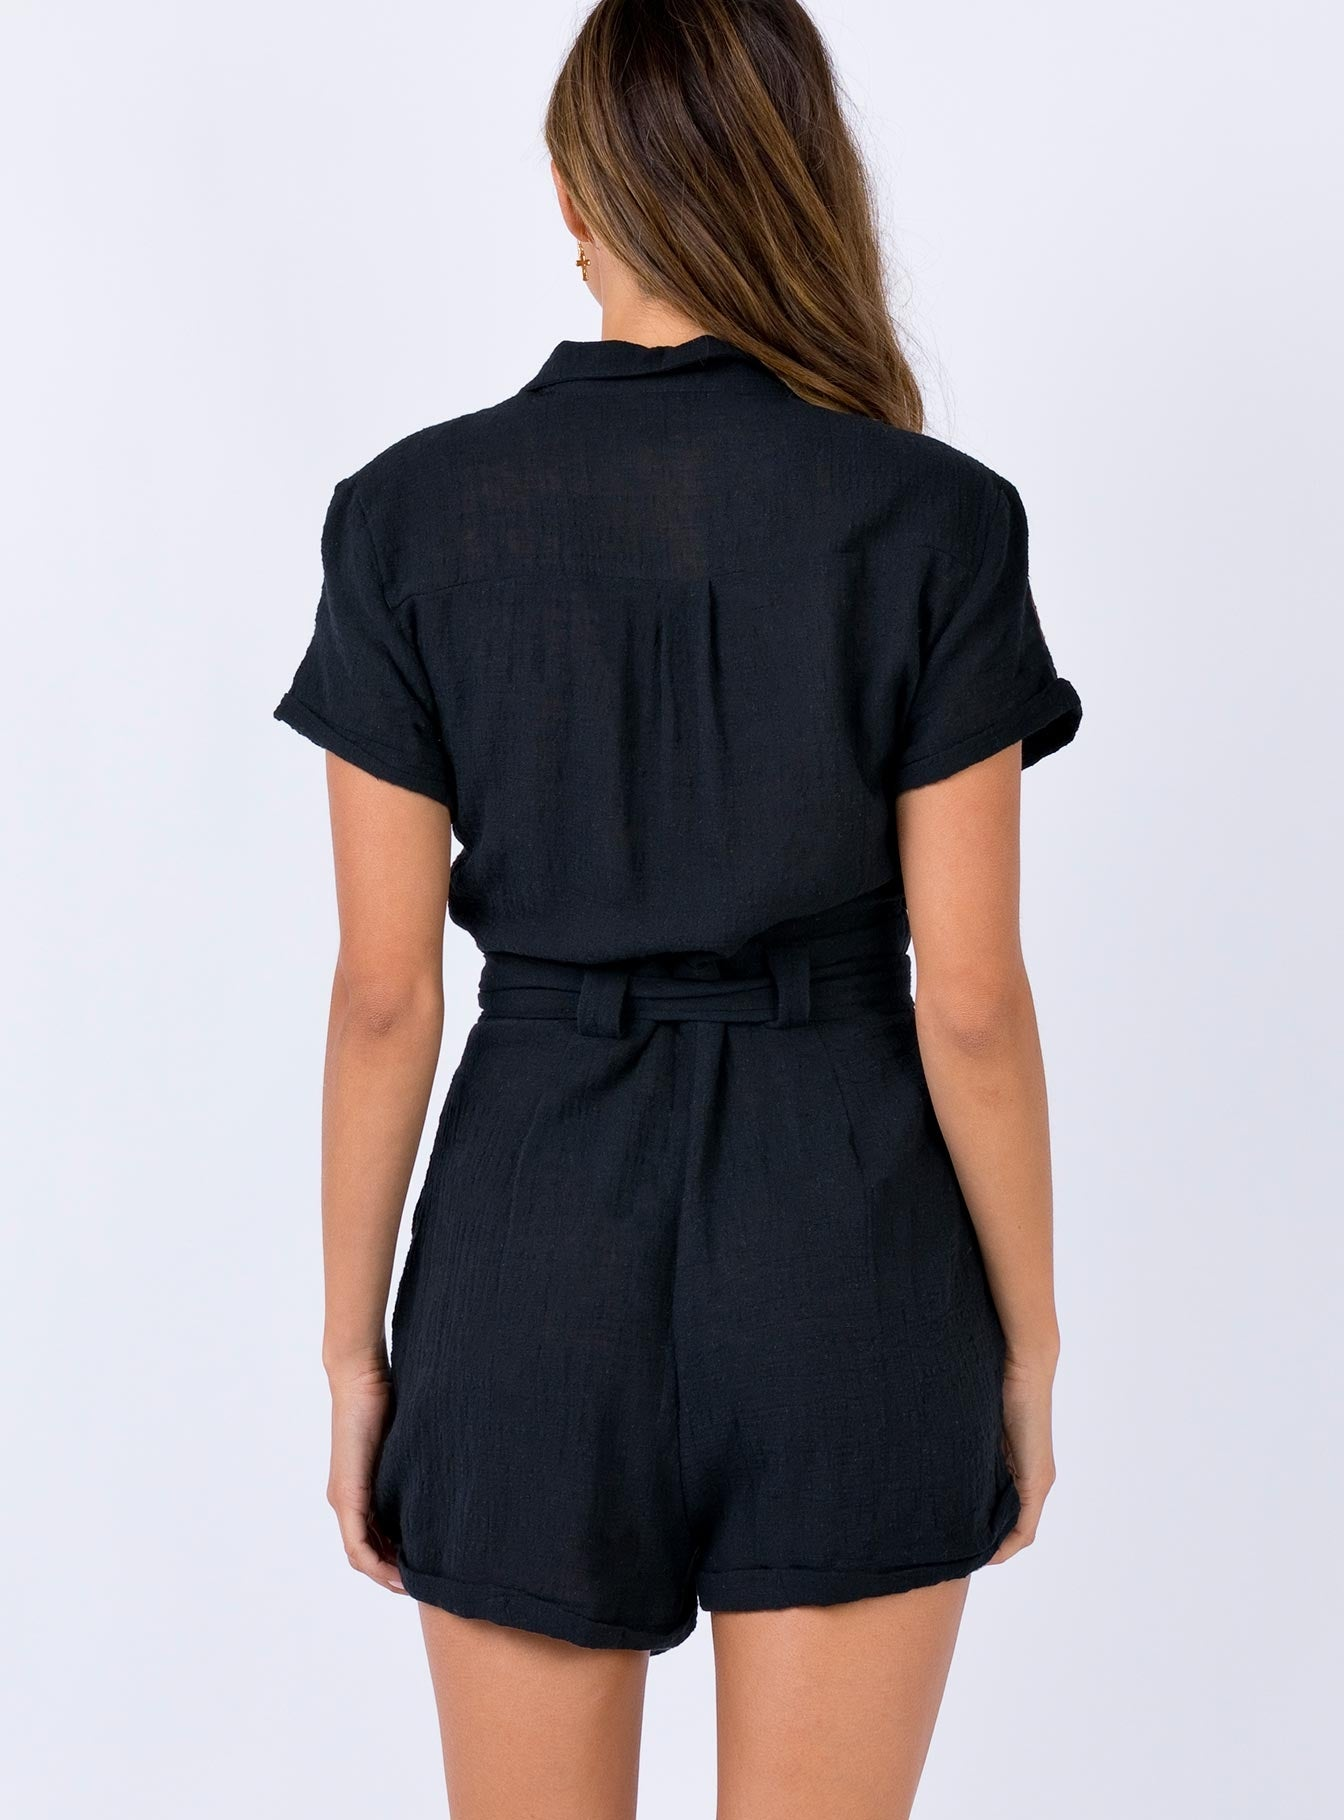 Ashens Playsuit Black